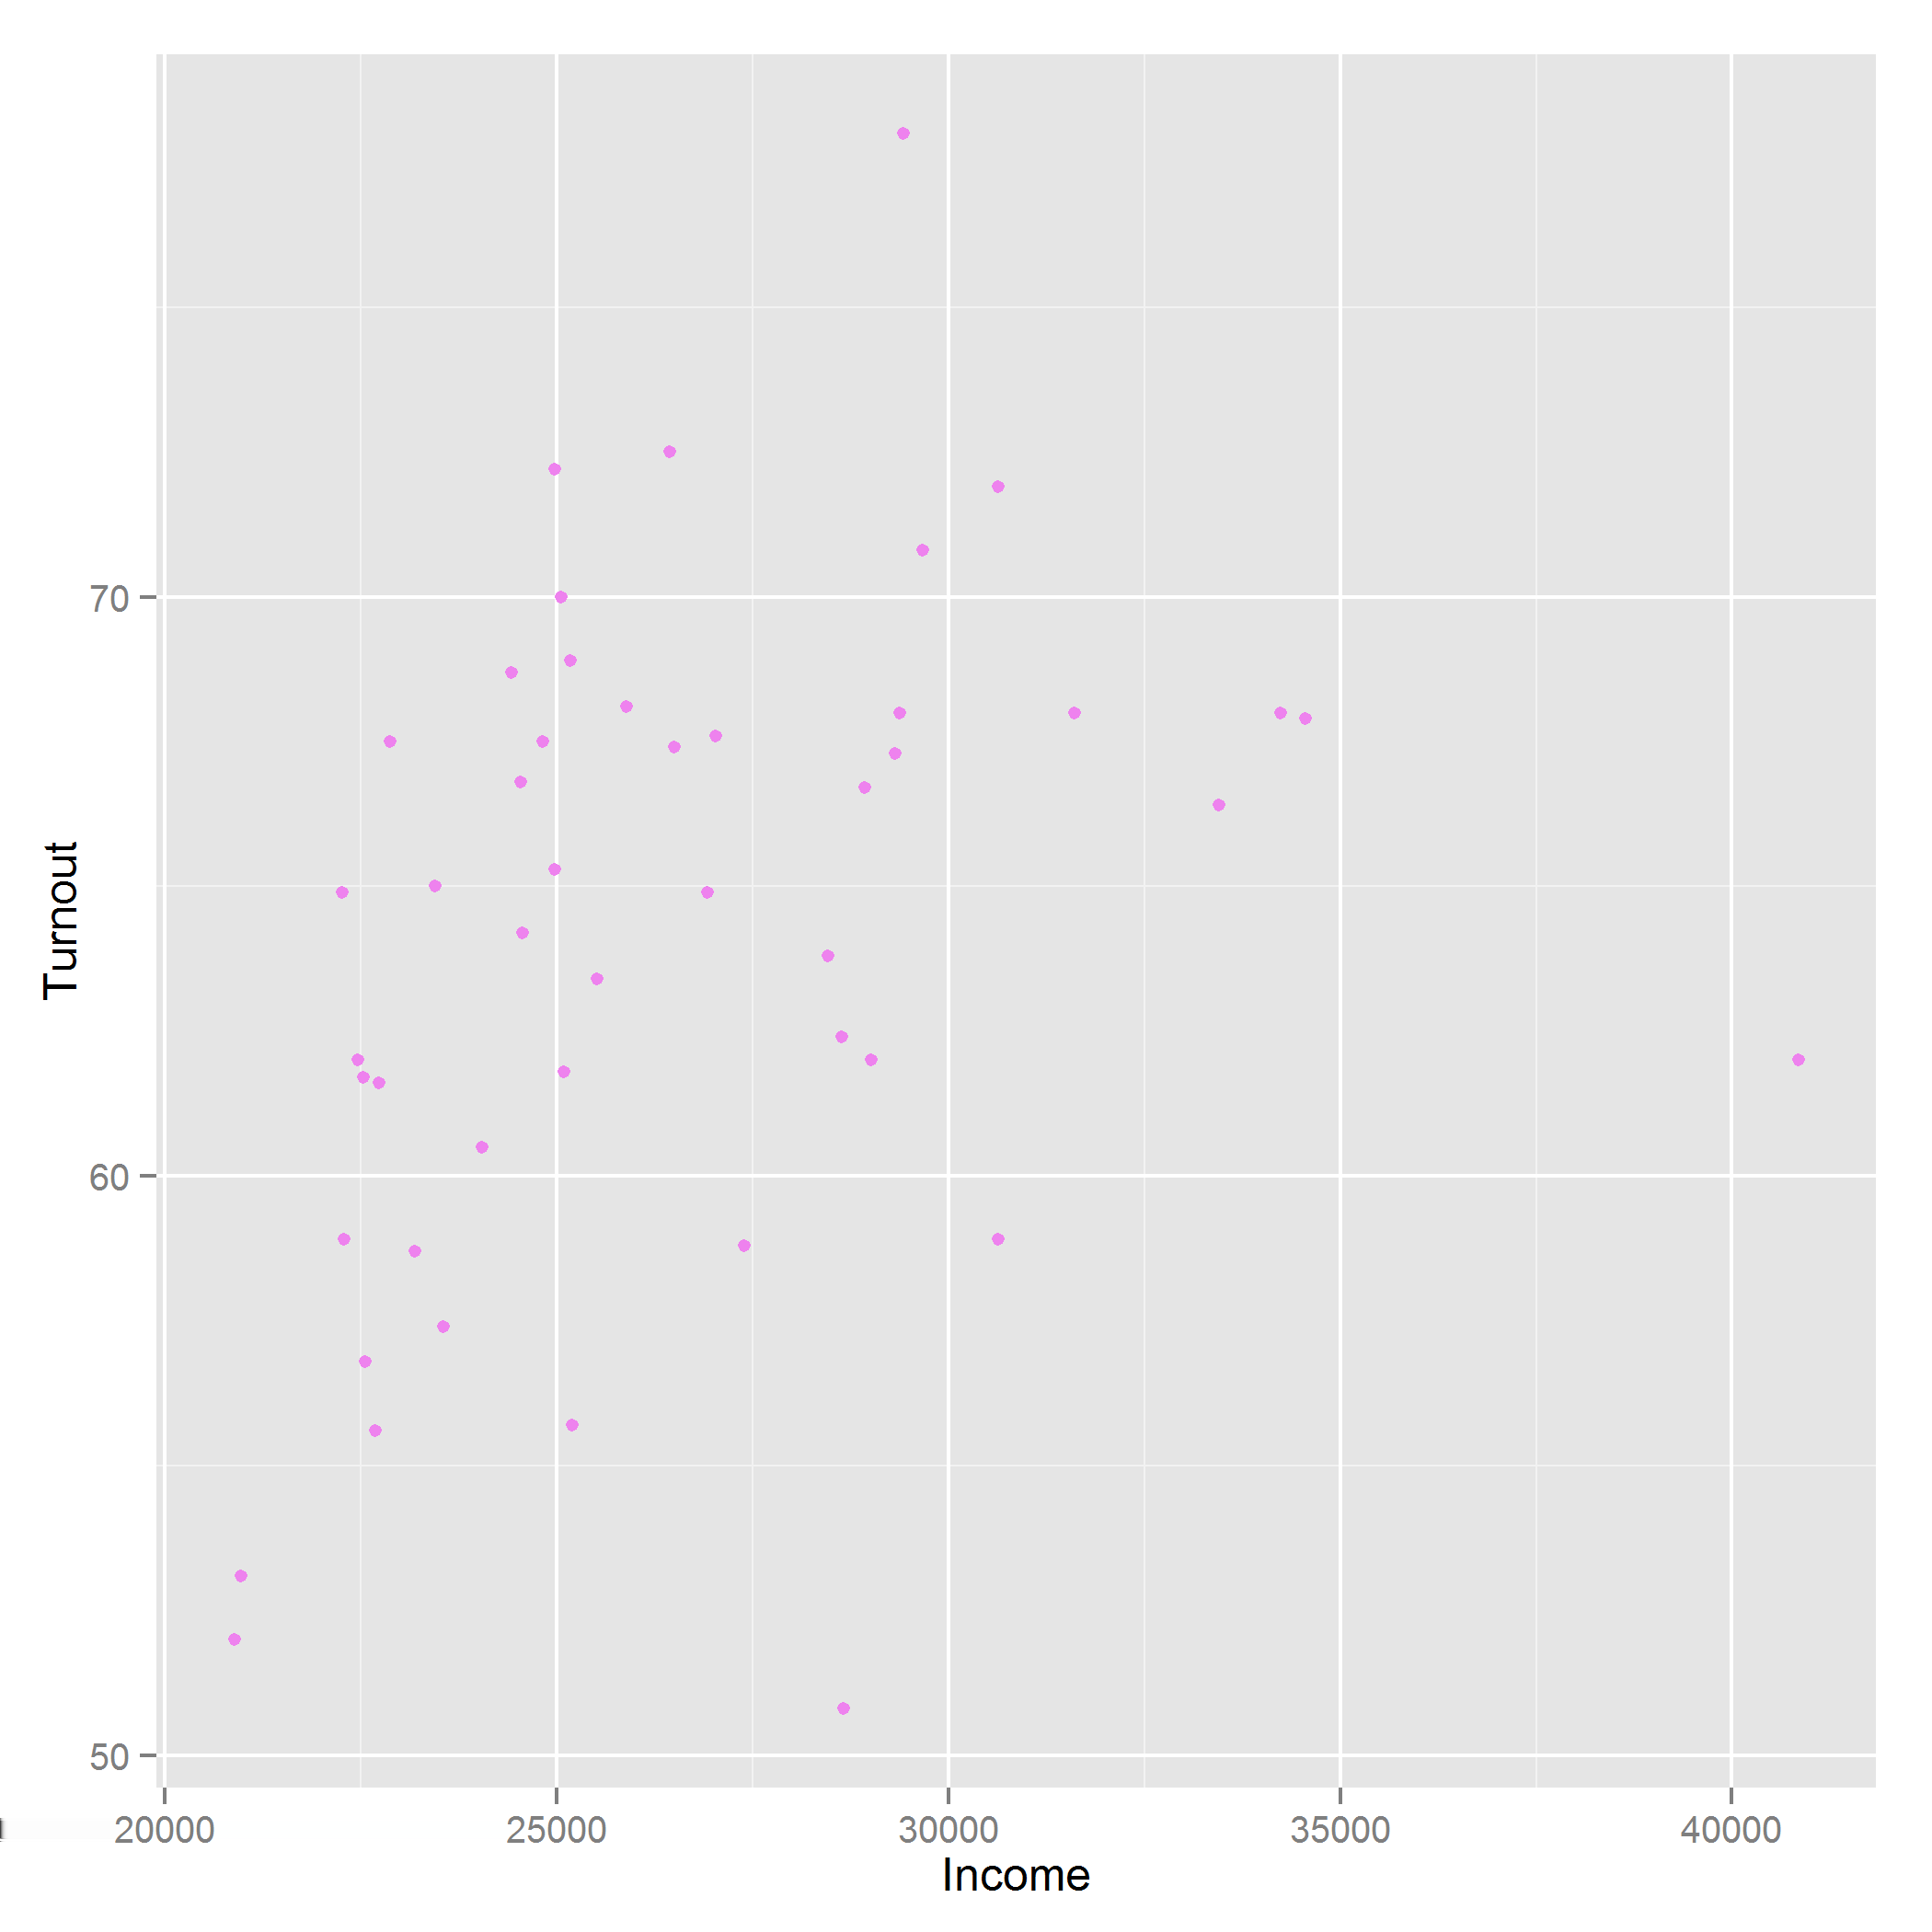 Figure 14-14. Setting color and point shape using ggplot2 graphics To set a log scale, we add a scale for each axis, as seen in Figure 14-15.